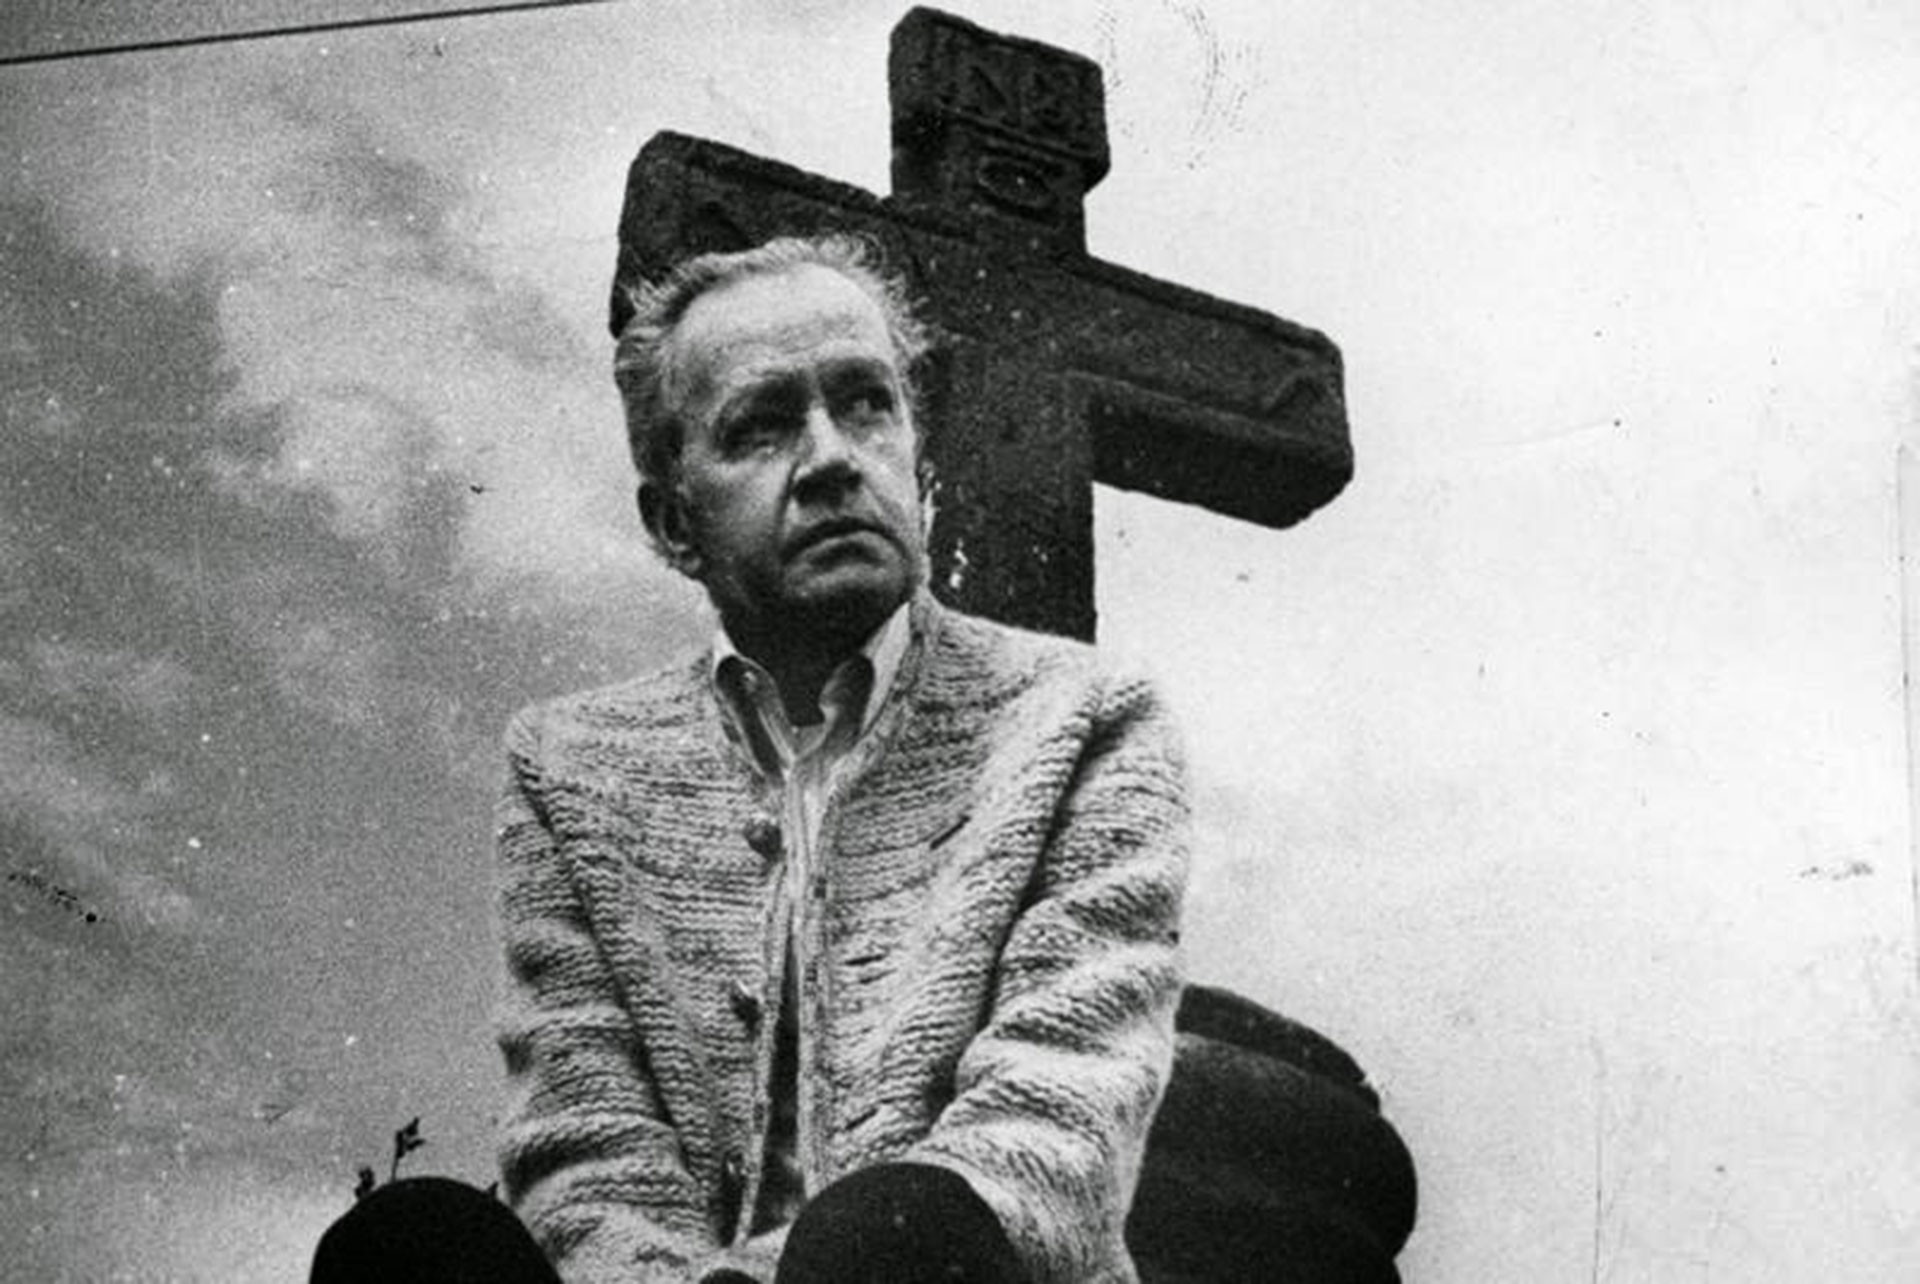 Black and white photograph of Juan Rulfo sitting in front of a stone cross.